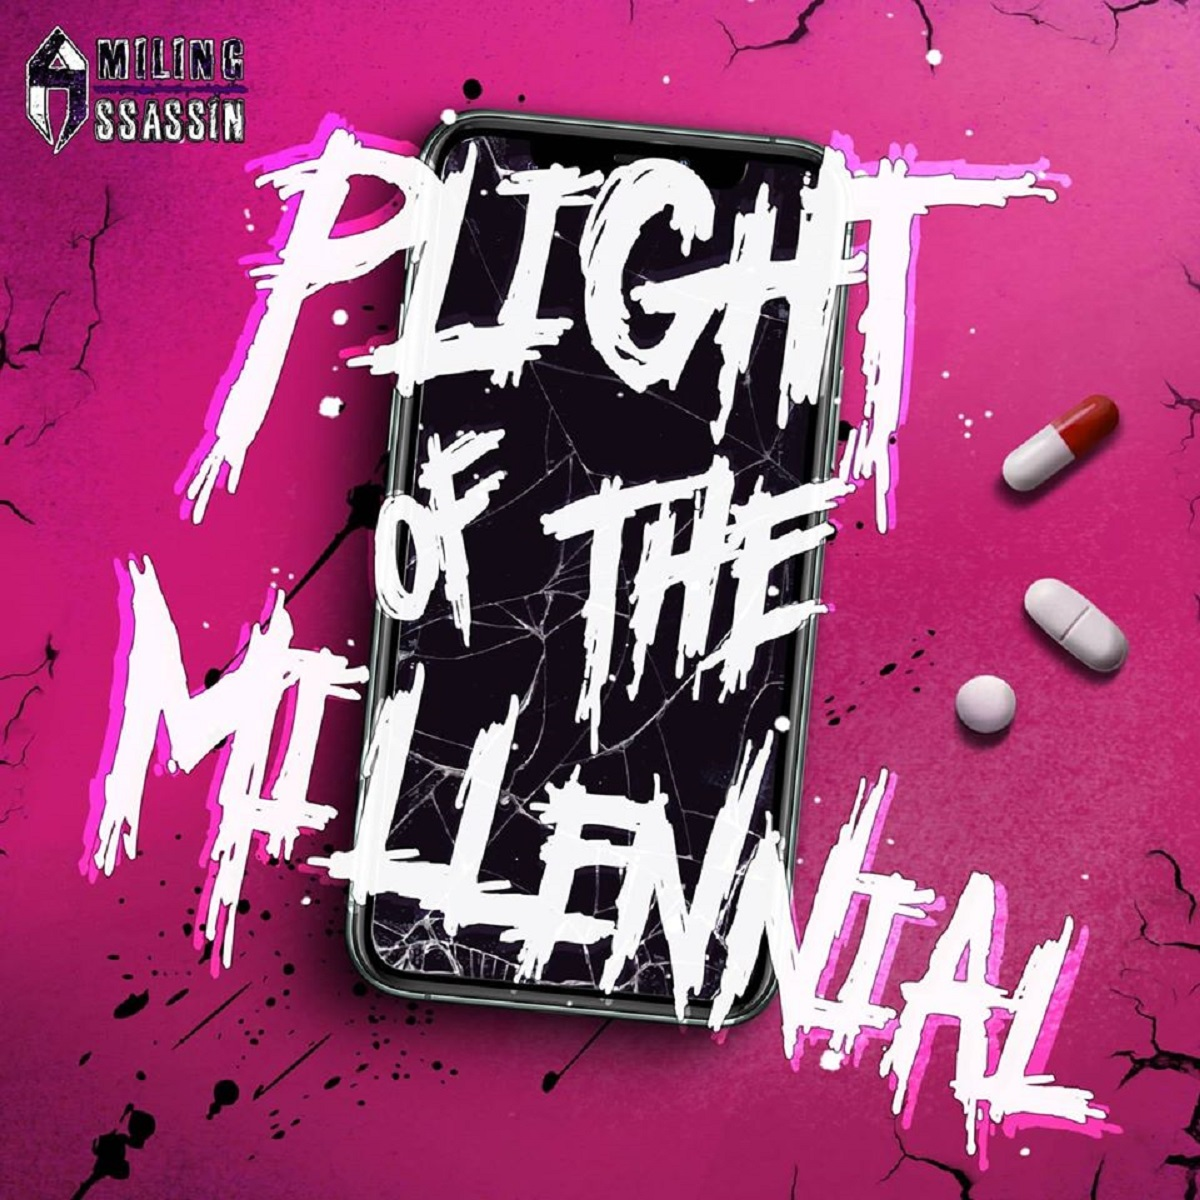 Review: Smiling Assassin – Plight Of The Millenial